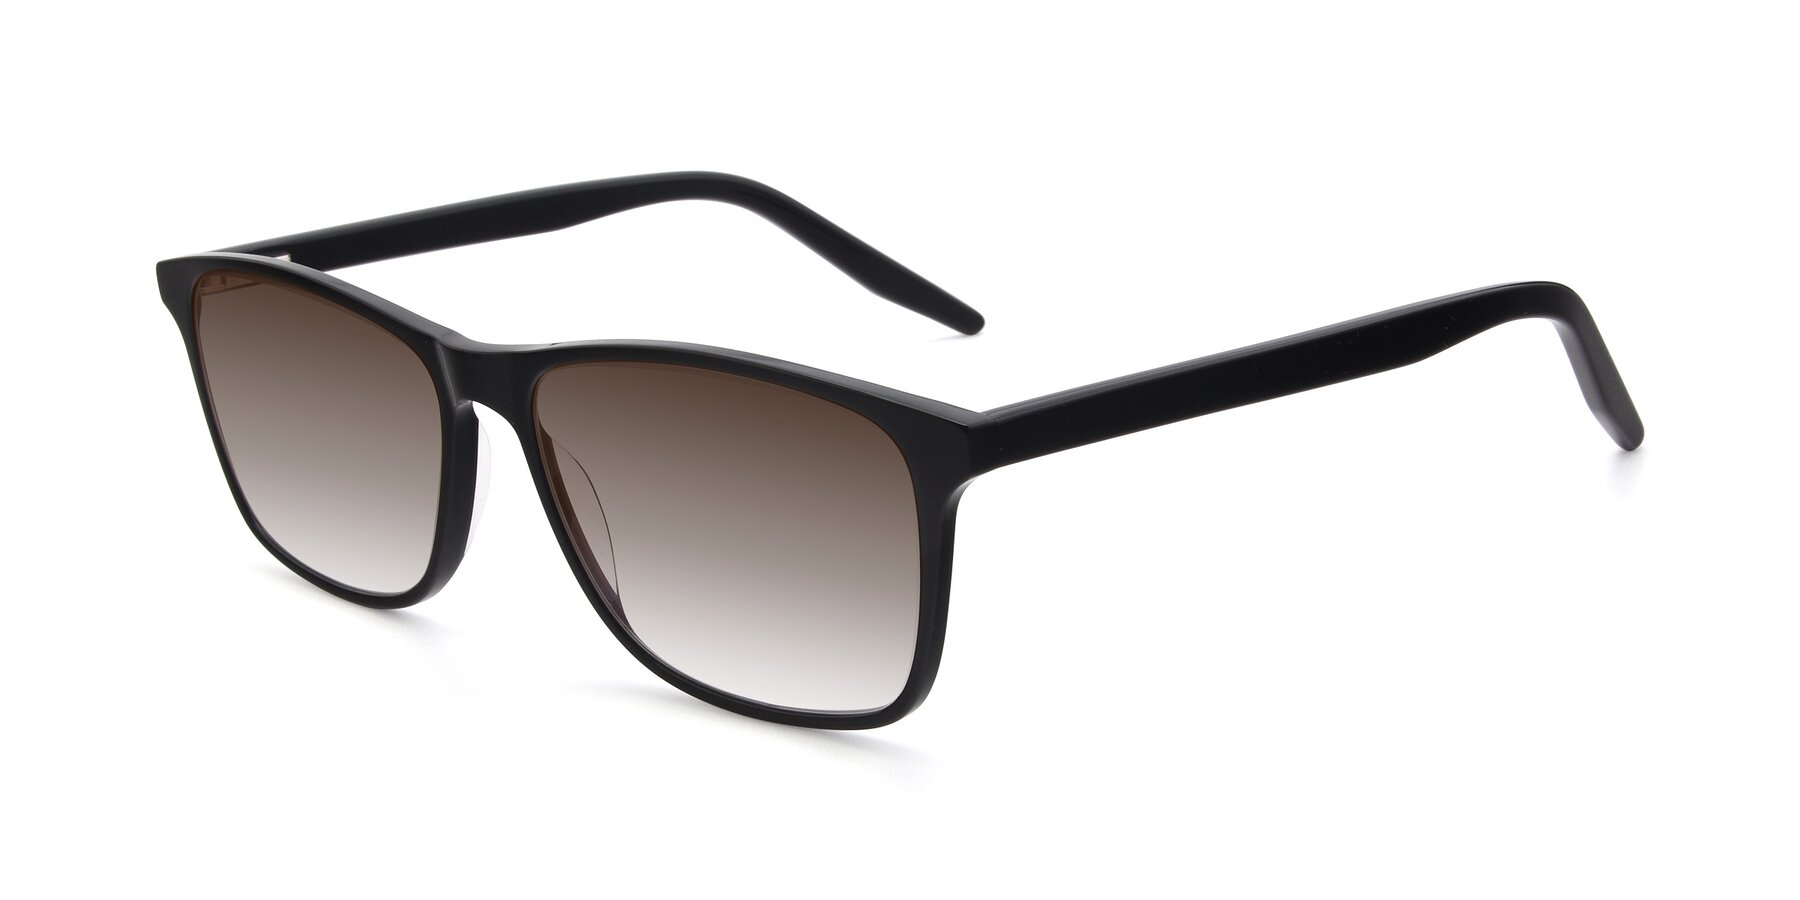 Angle of 17500 in Black with Brown Gradient Lenses